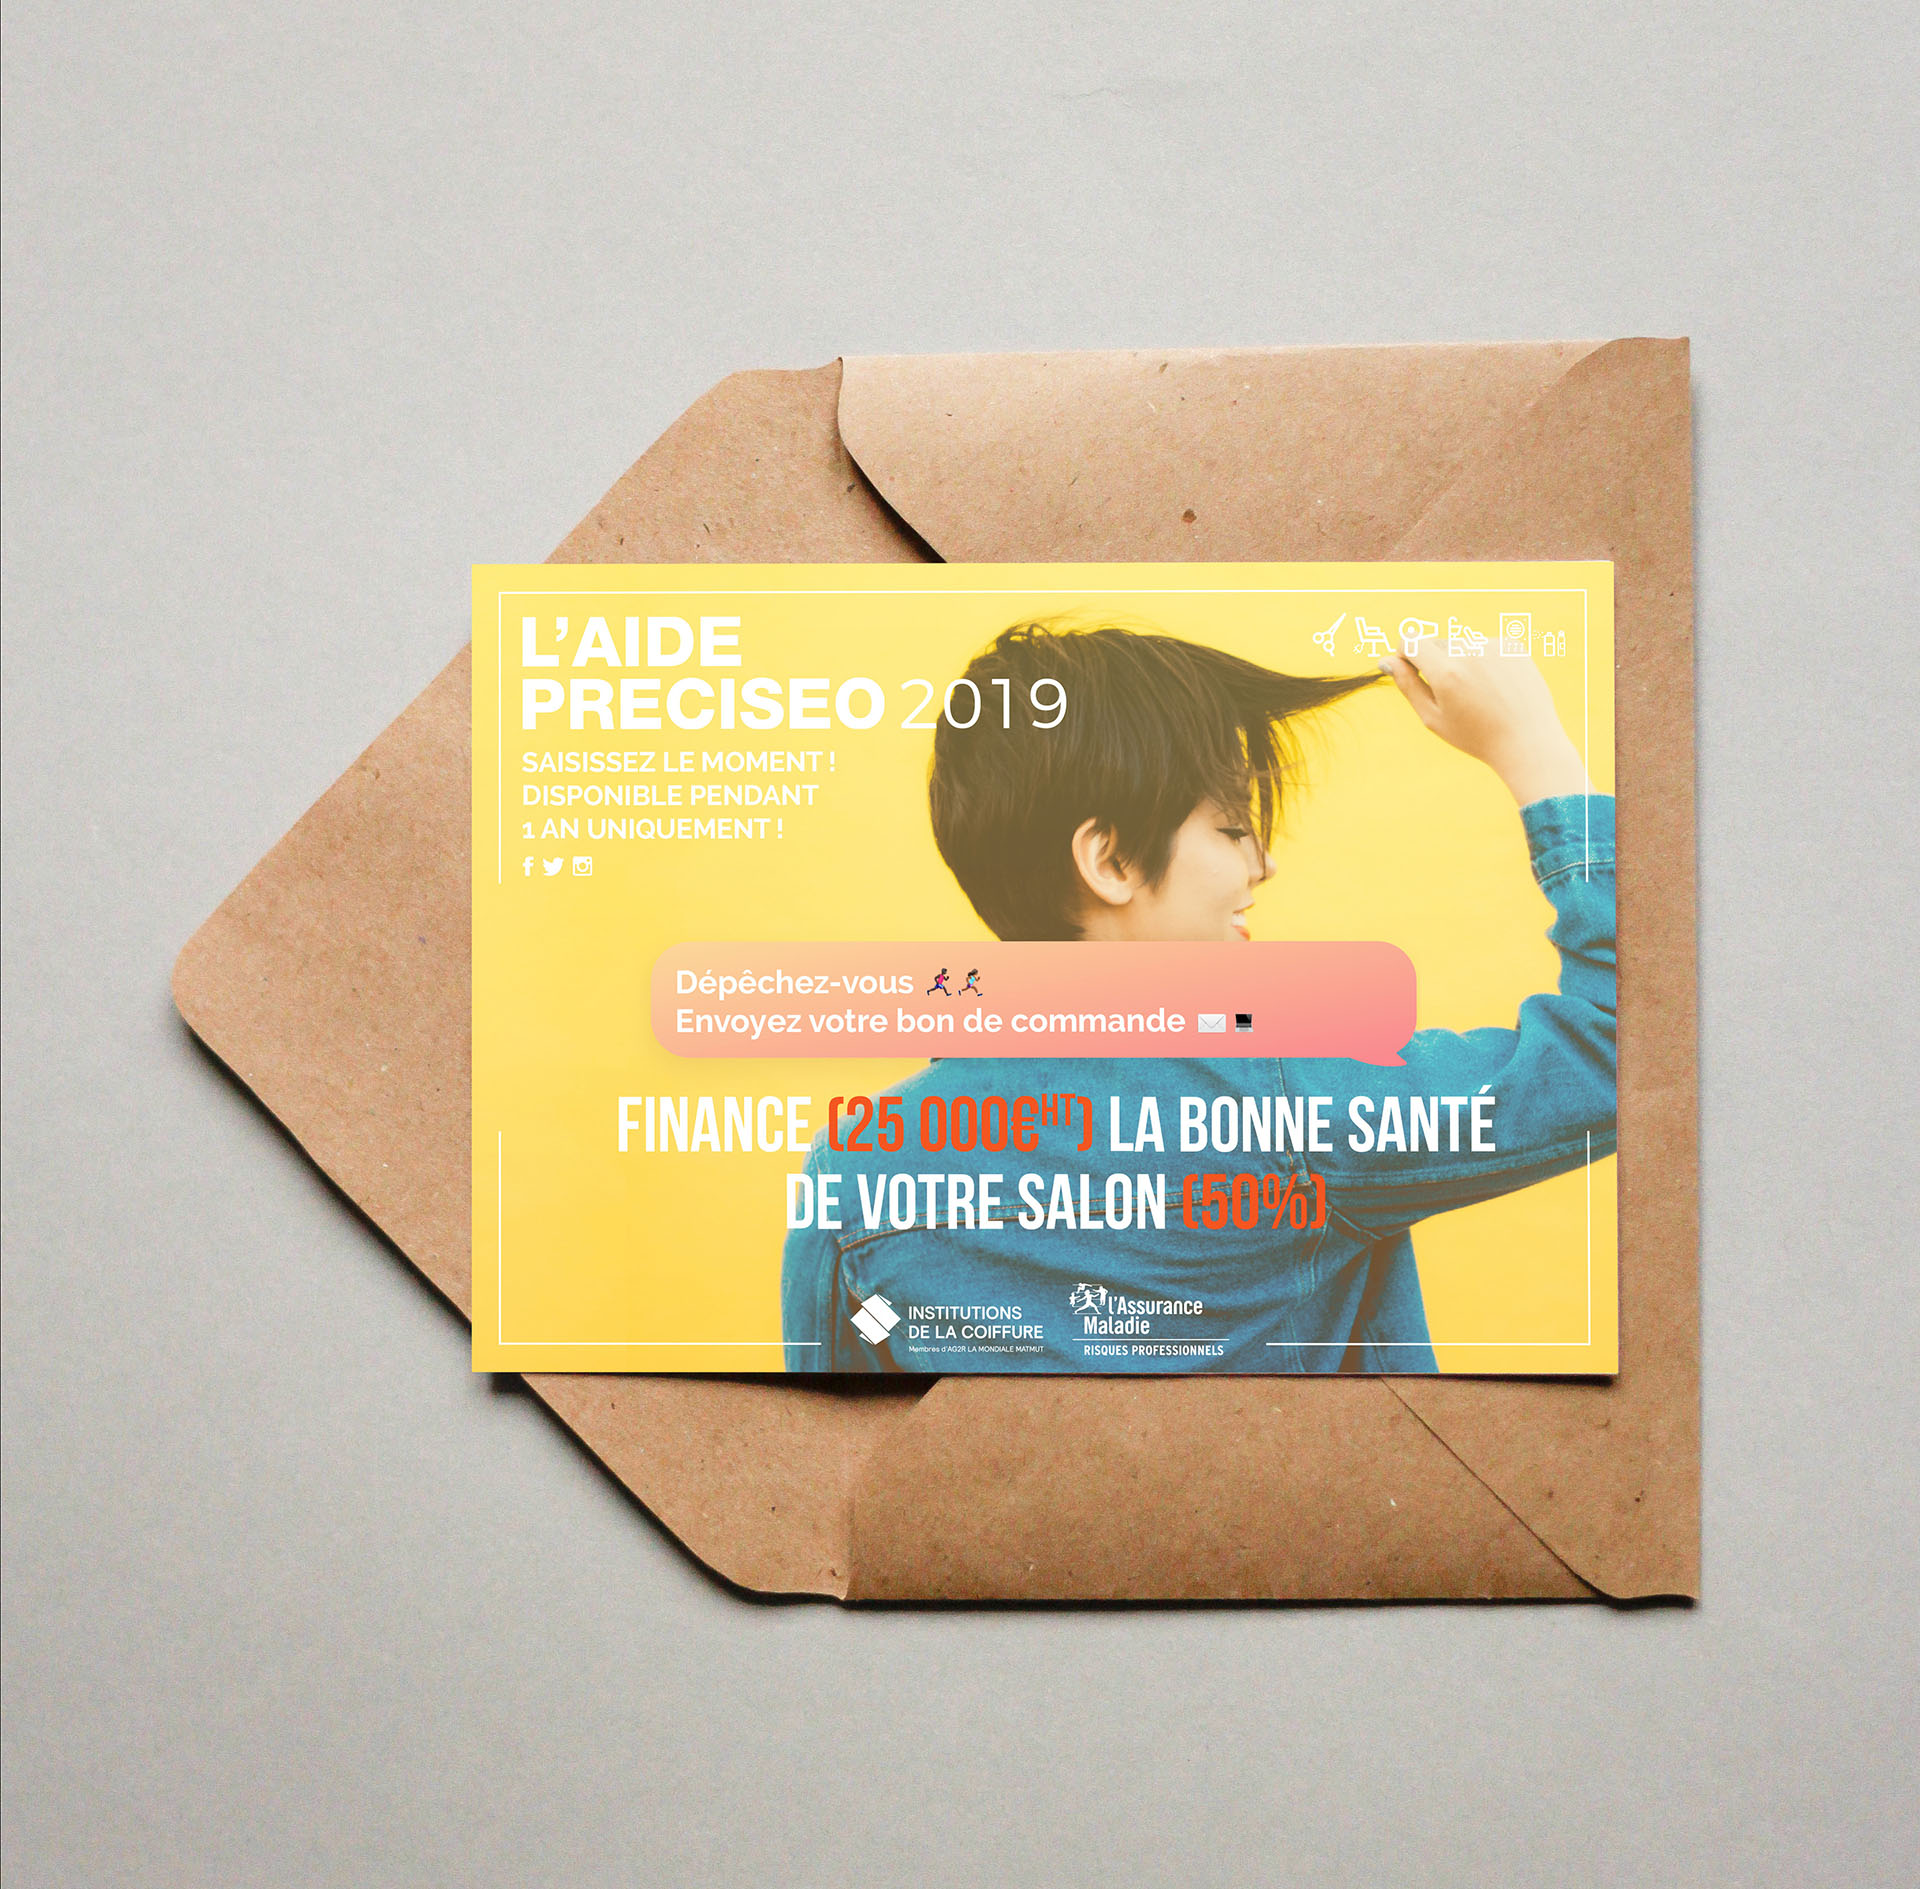 mock-up-invitation-aide-preciseo-agence-conseil-en-communication-Letb-synergie